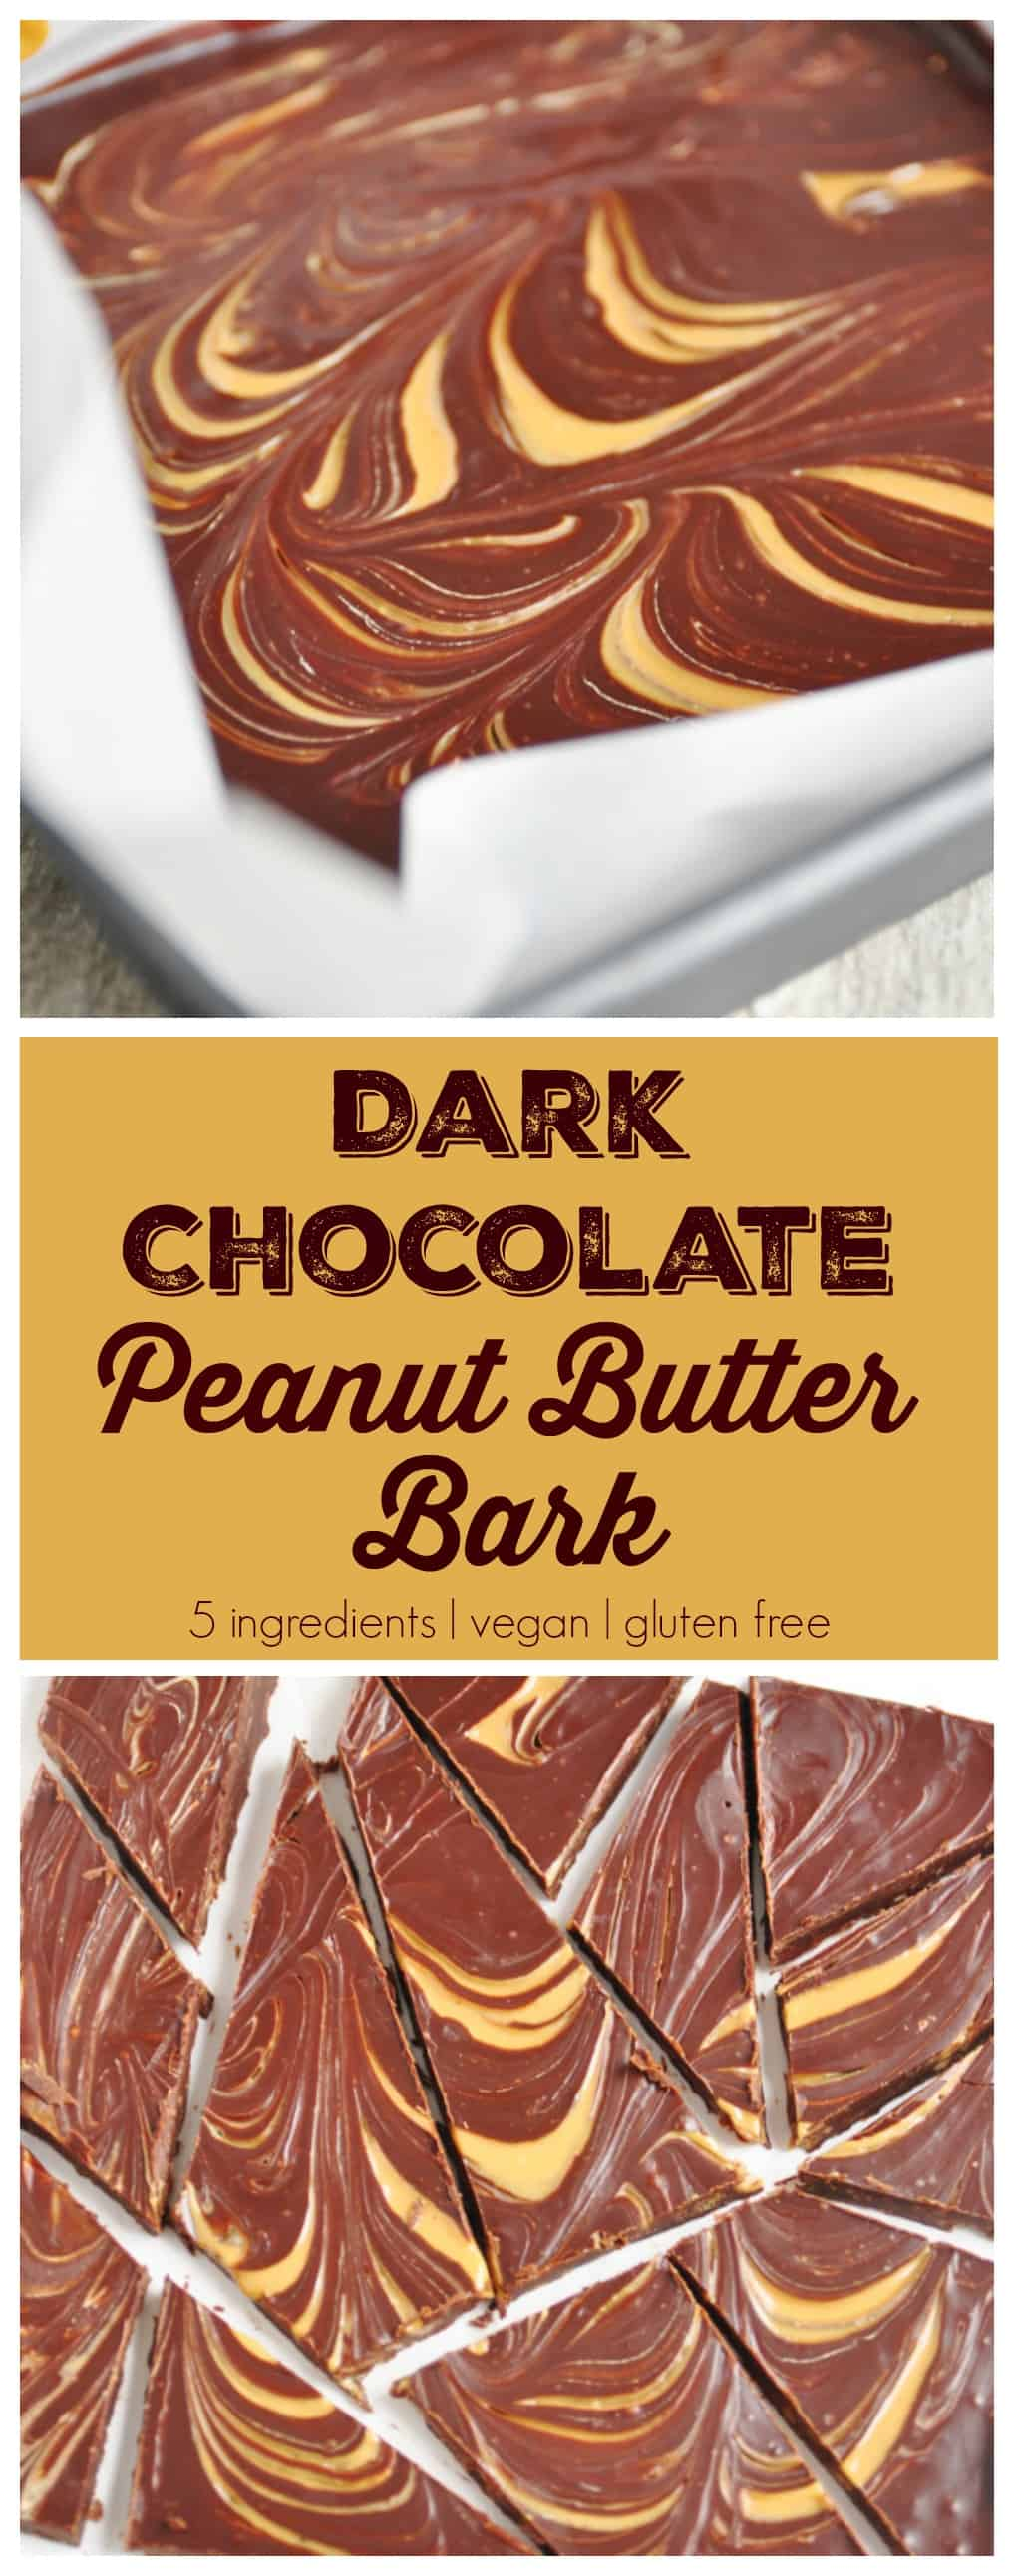 Dark Chocolate Peanut Butter Bark. Be Whole. Be You.